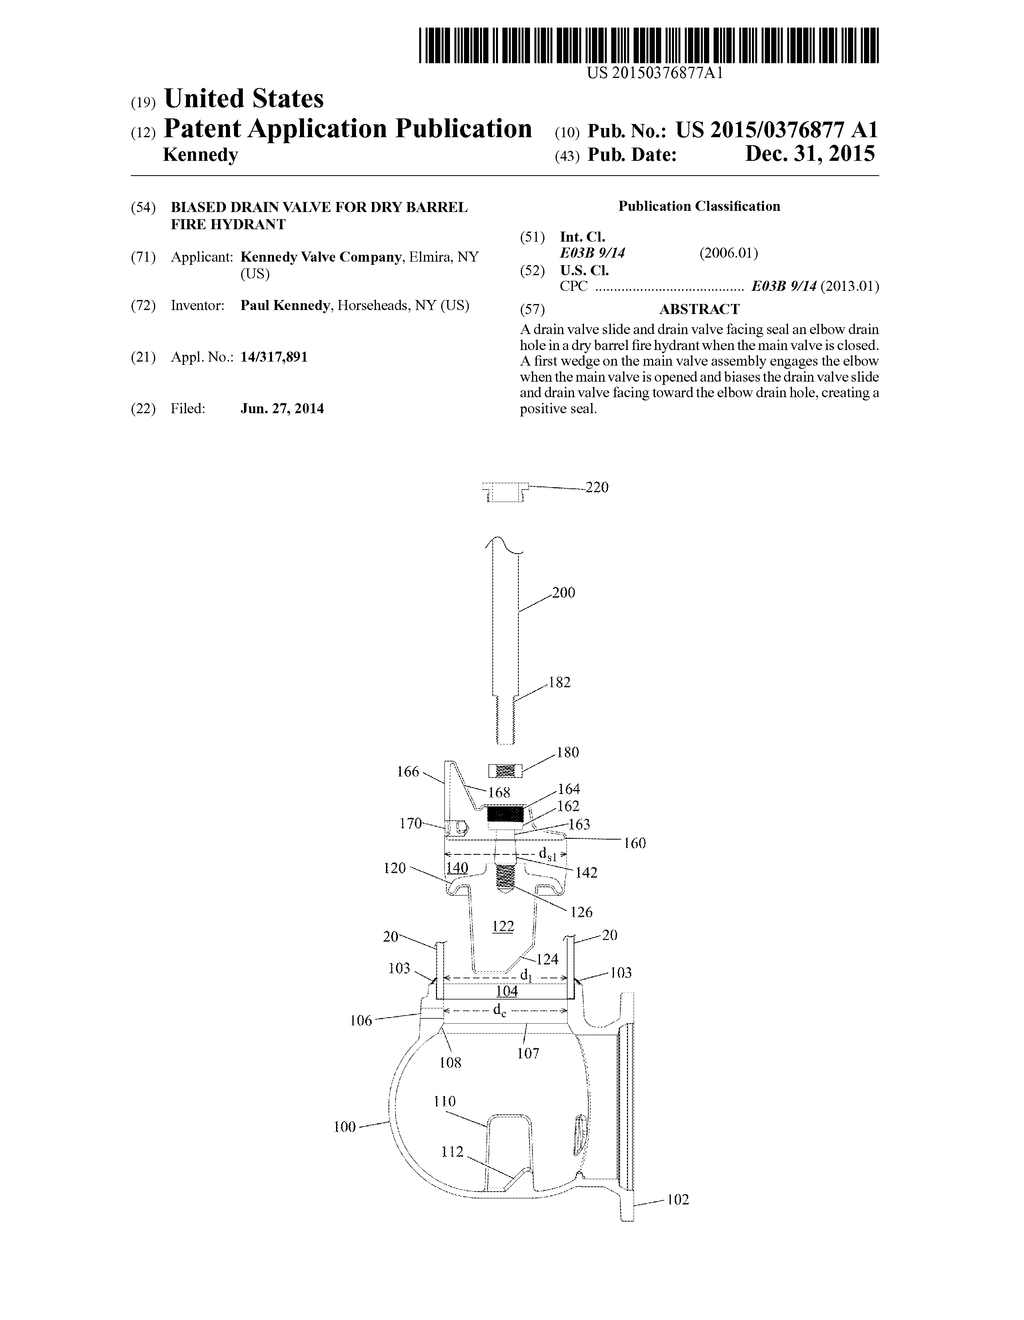 Biased drain valve for dry barrel fire hydrant diagram biased drain valve for dry barrel fire hydrant diagram schematic and image 01 pooptronica